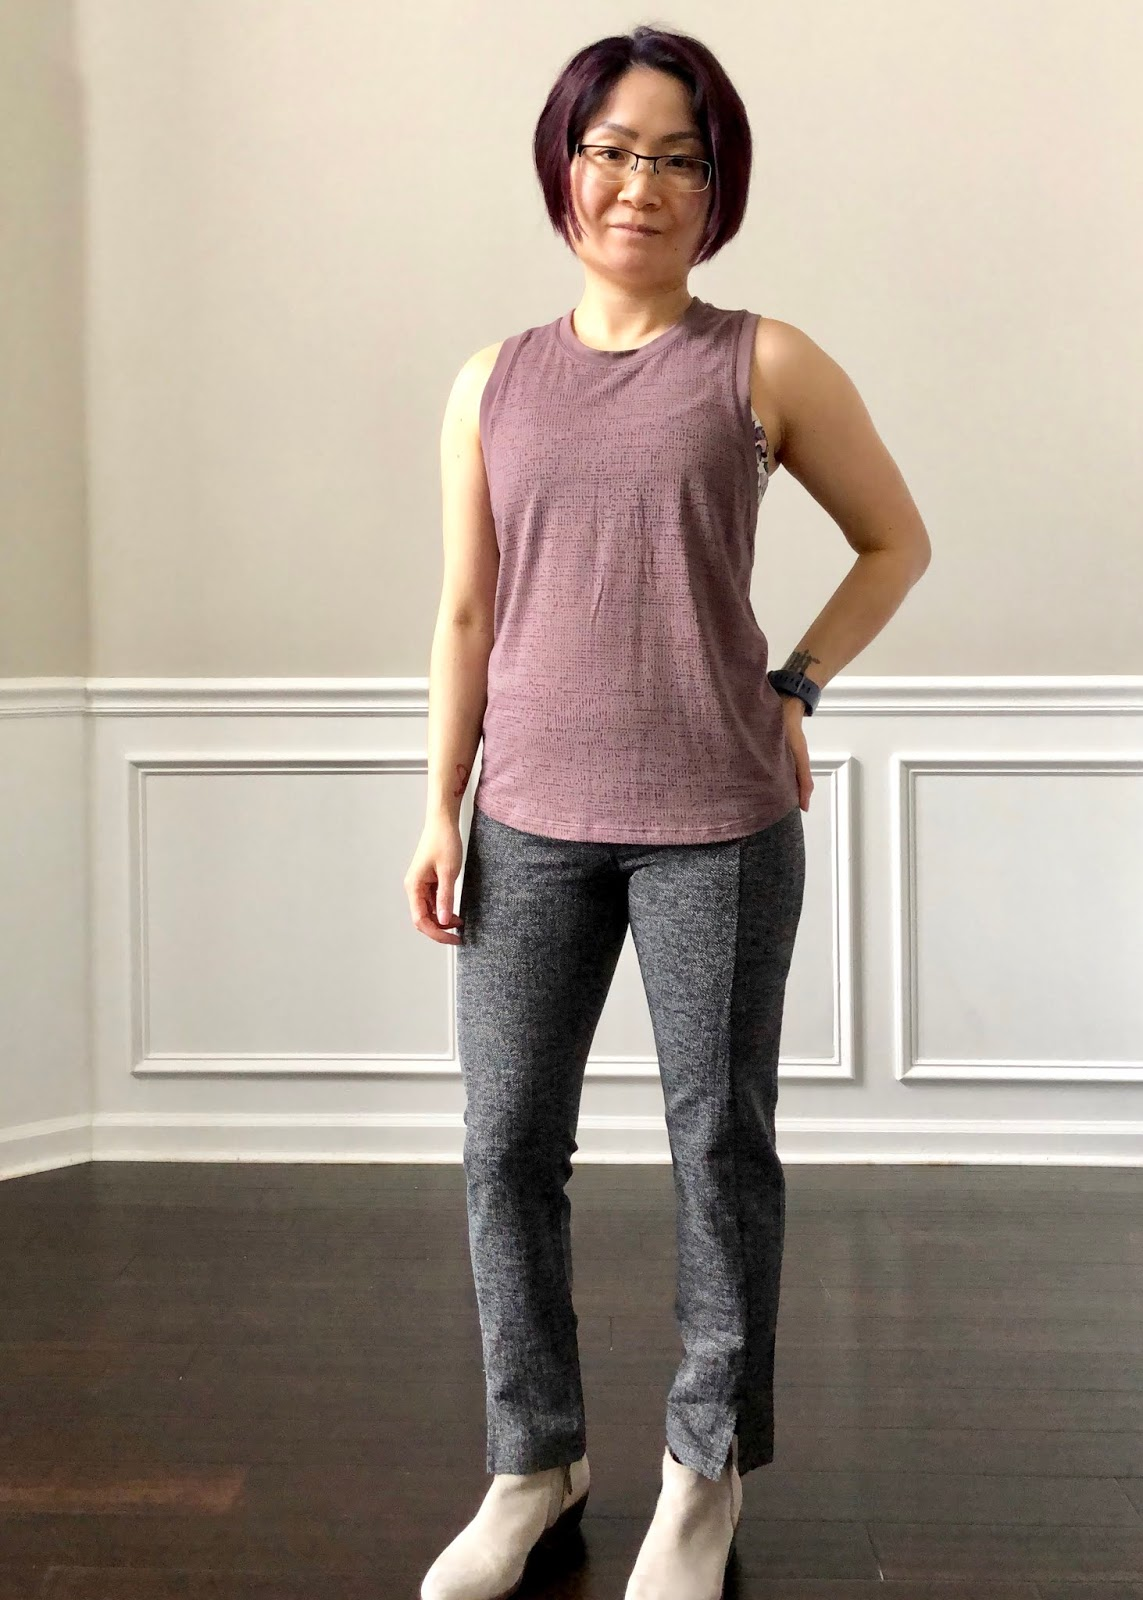 4884b22673cd For reference I m 4 feet 11 and typically a size PXS in Athleta tops and  bottoms. In Lululemon I wear a size 4 in bottoms.